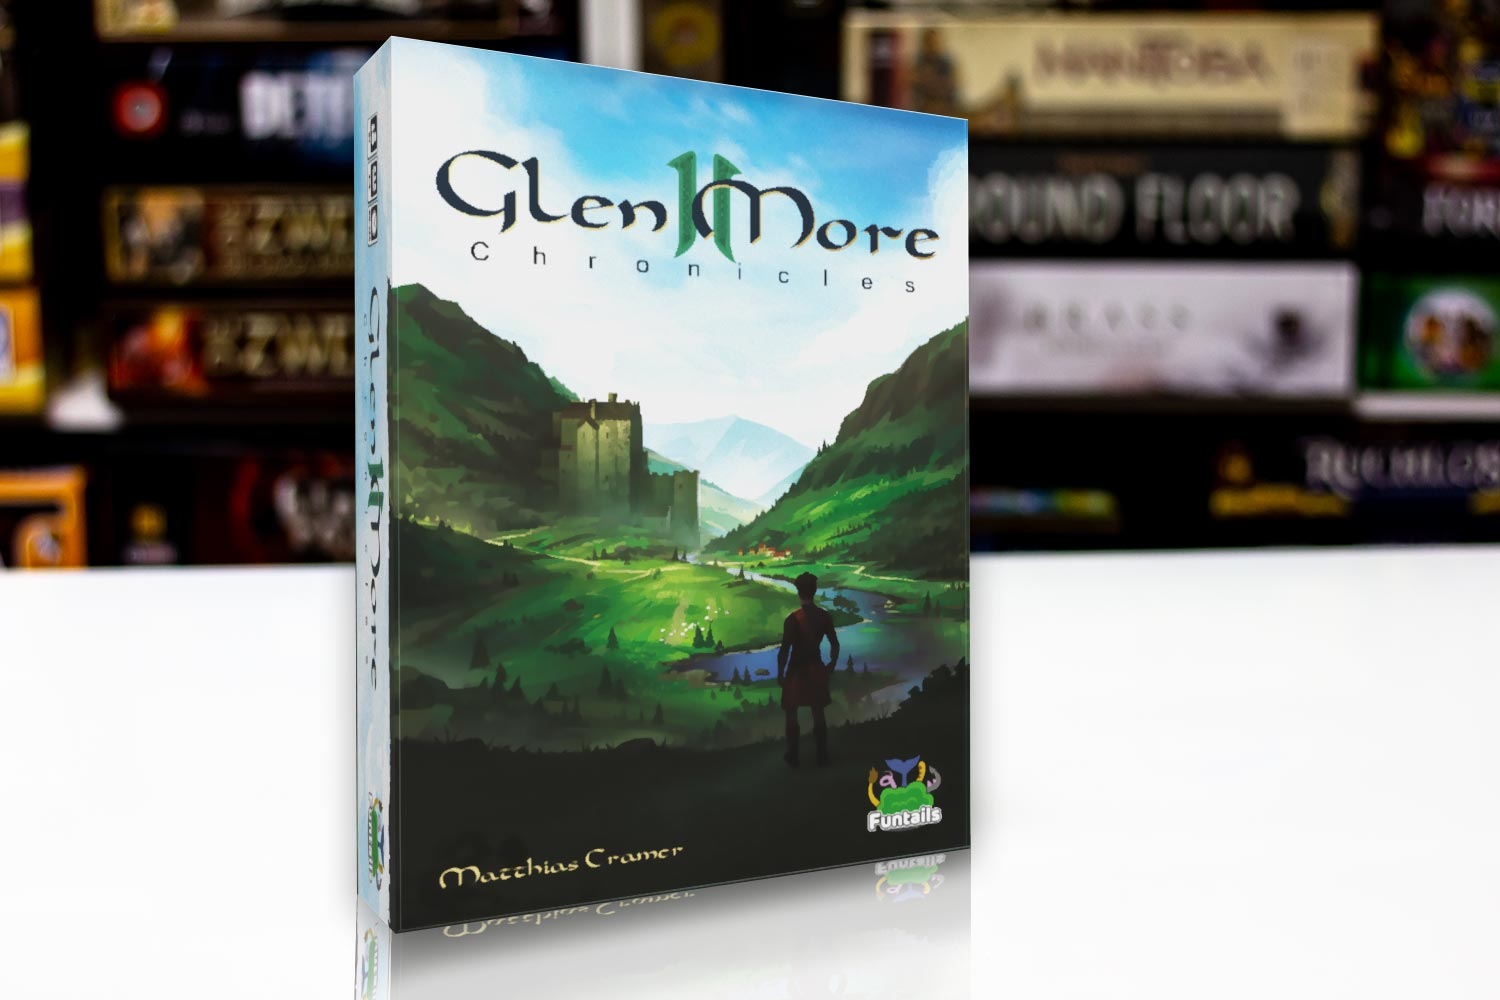 GLEN MORE II: CHRONICLES // Auf Kickstarter gestartet